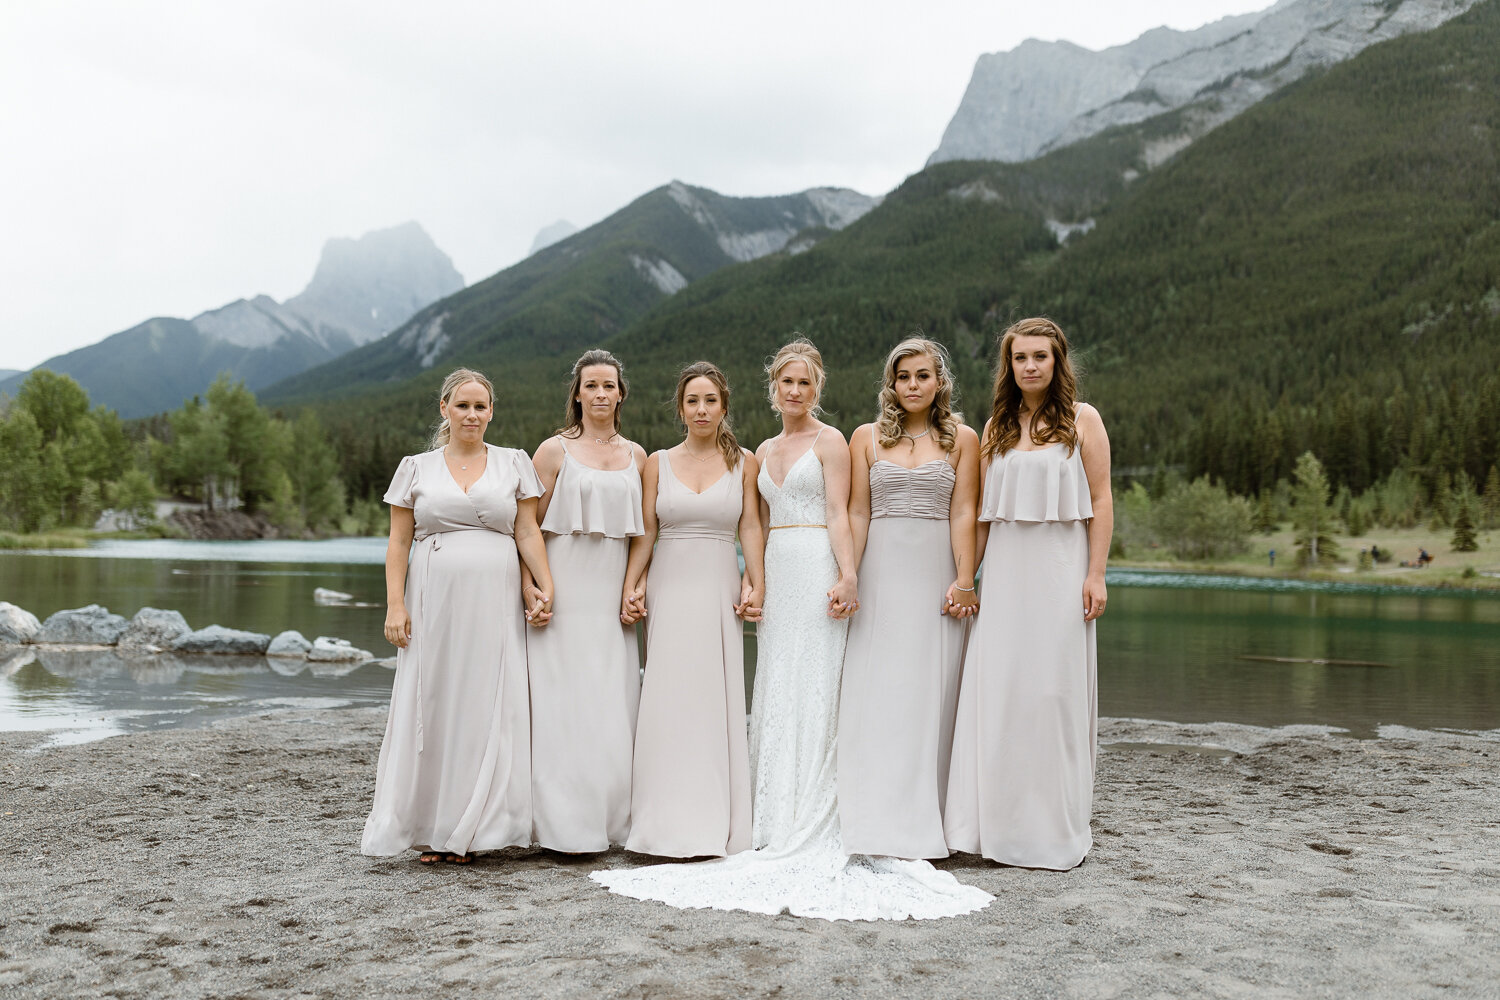 83-Canmore-Alberta-Real-Wedding-Best-Wedding-Photographers-122.JPG